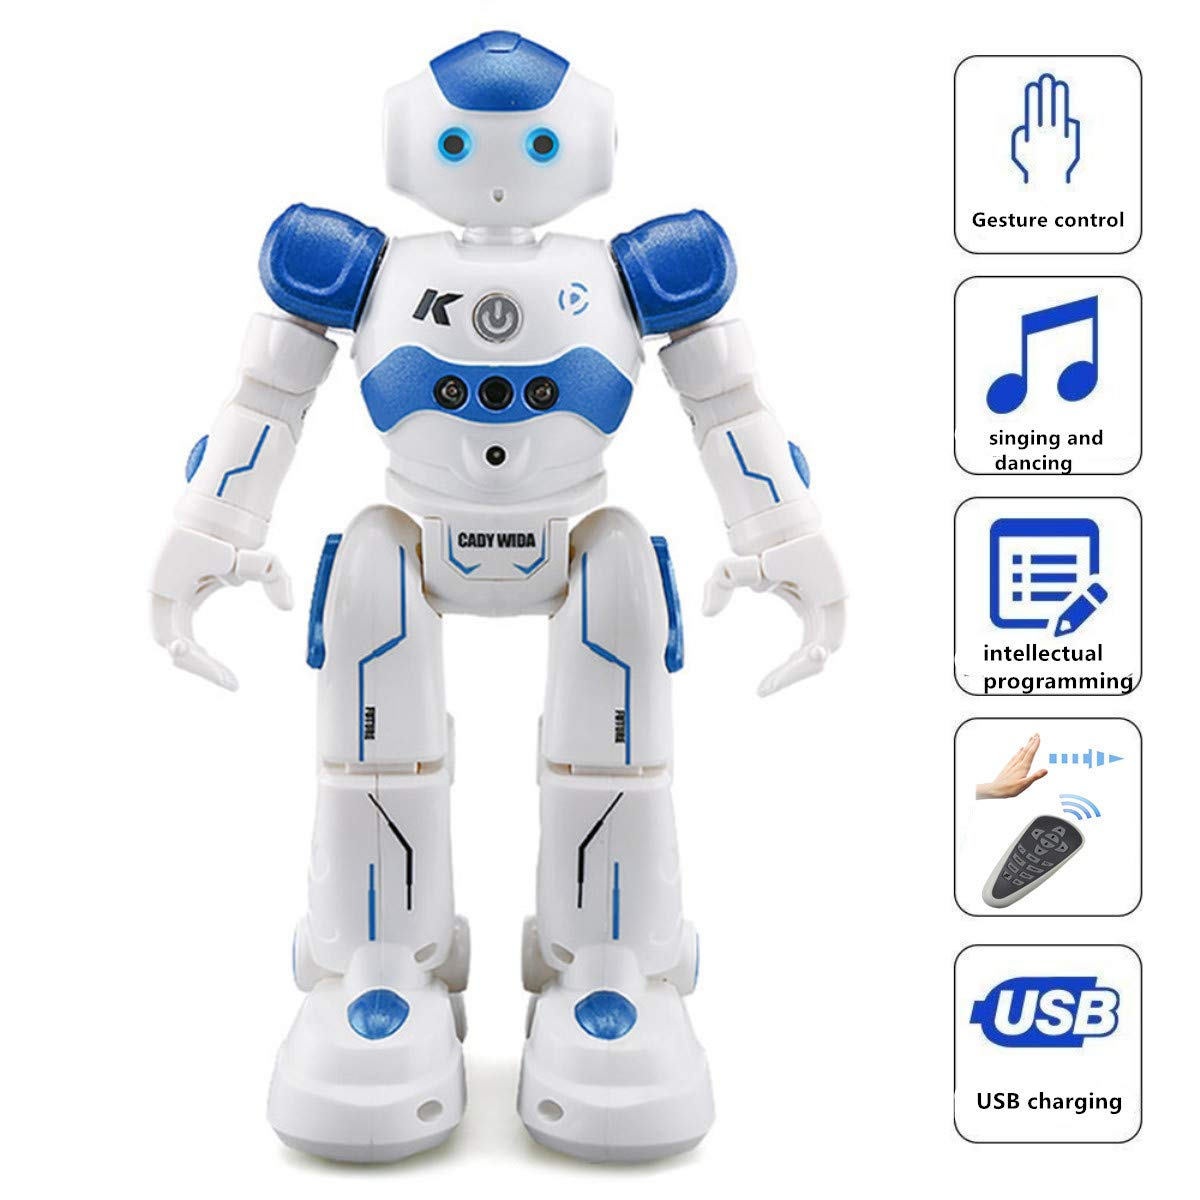 WEECOC Smart Robot Toys Gesture Control Remote Control Robot Kids Toys Birthday Can Singing Dancing Speaking Two Walking Models (White) by WEECOC (Image #3)